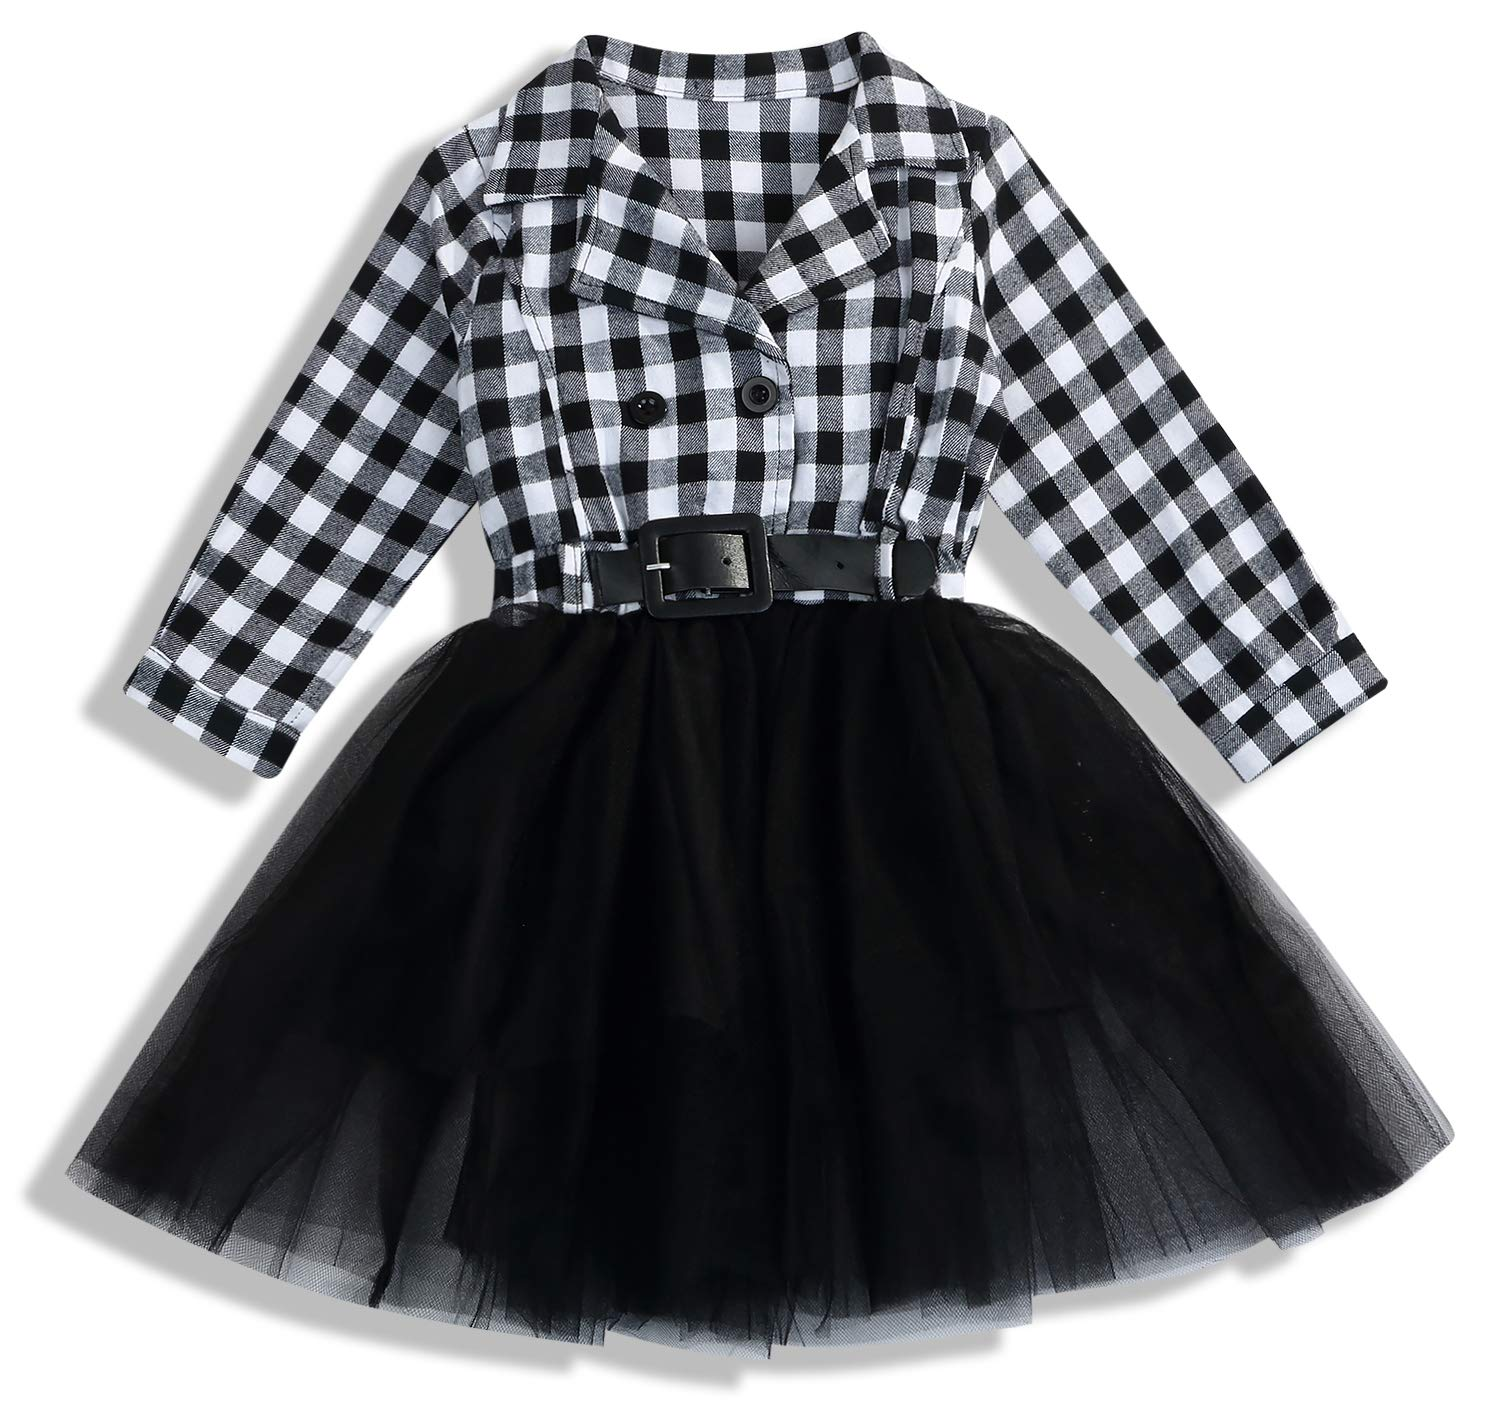 7ce0a8f16 Galleon - Little Kids Baby Girl Dresses White And Black Plaid Tutu Skirt  Party Princess Formal Outfit Clothes (Black, 5-6 T)